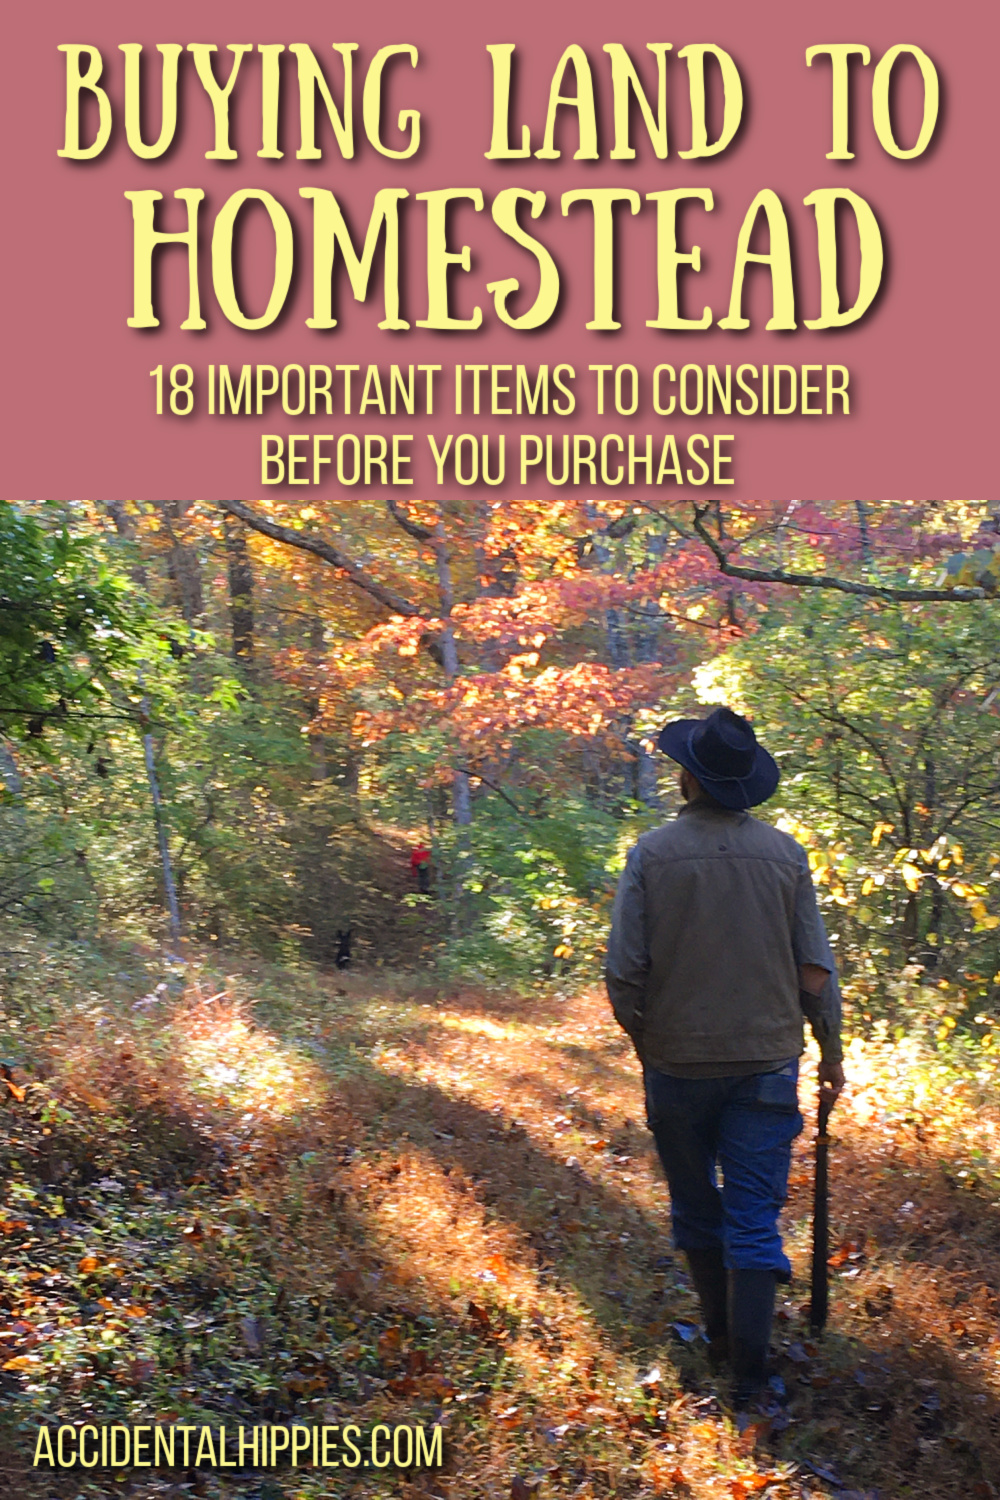 Buying Homestead Land: 18 Things to Consider Before You Purchase, man walking in the woods